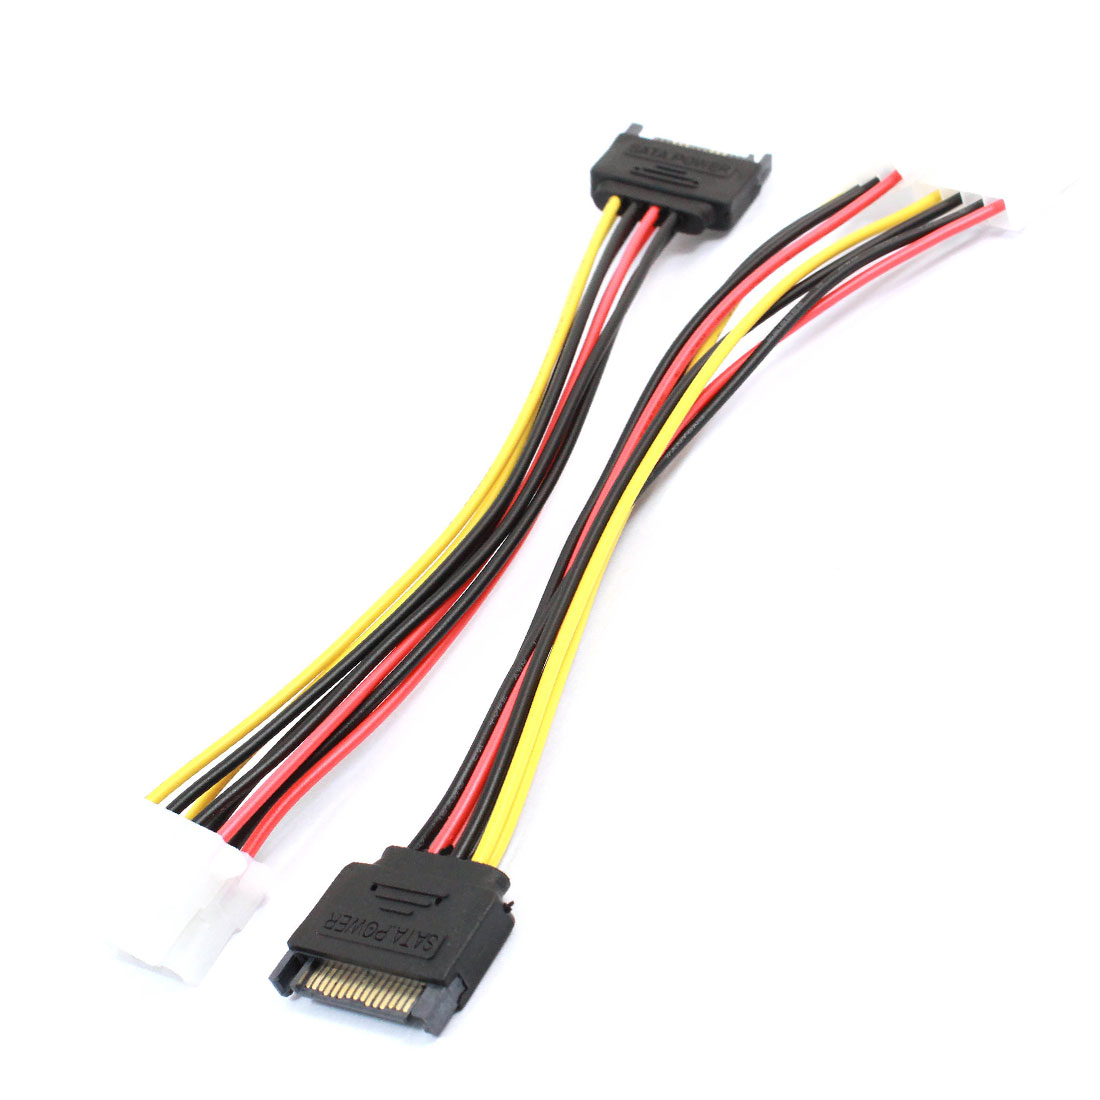 2pcs SATA Power Plug 15 Pin to Double IDE 4 Pin Splitter Connector Extention Cable 20cm